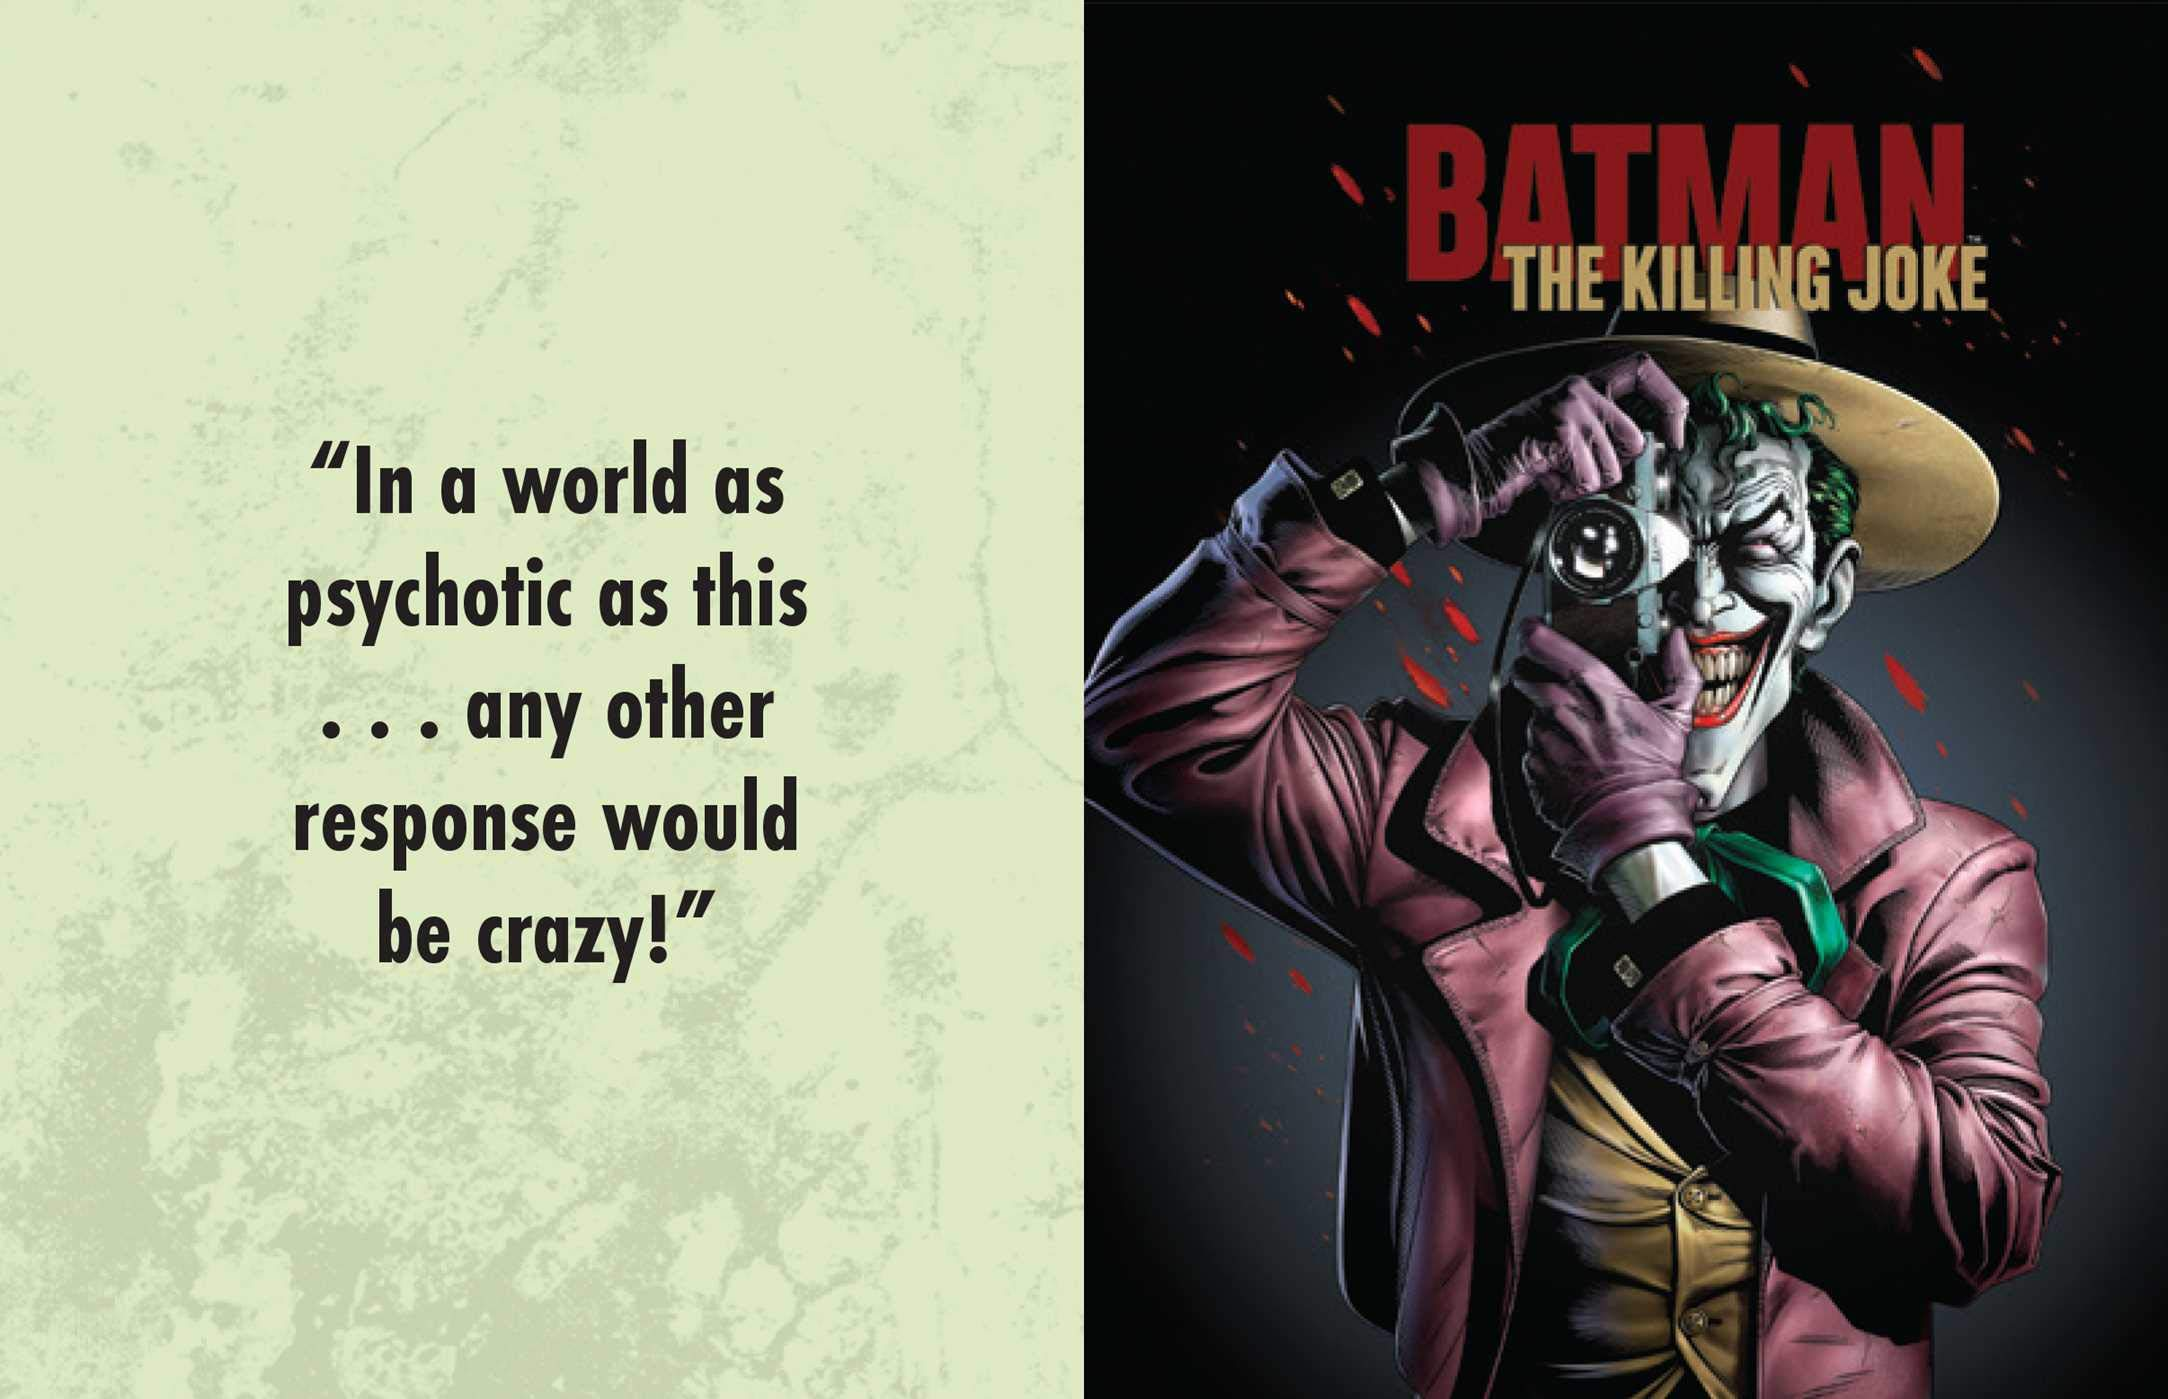 Dc Comics The Joker Quotes From The Clown Prince Of Crime Tiny Book Reed Darcy 9781683836995 Amazon Com Books